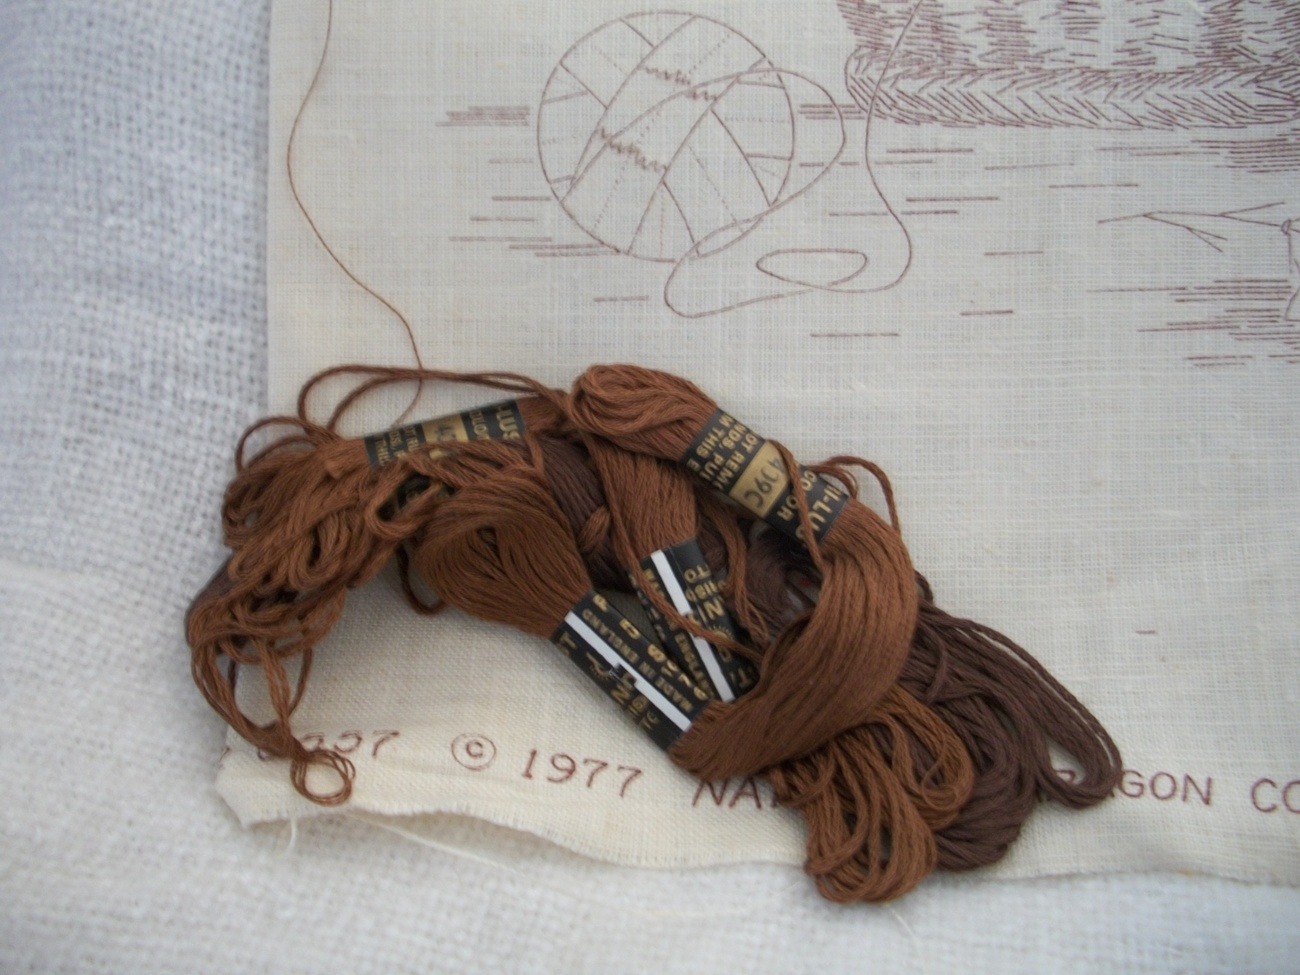 Lost and Found Crewel Embroidery Kit: Comes with Yarn, Canvas & Directions